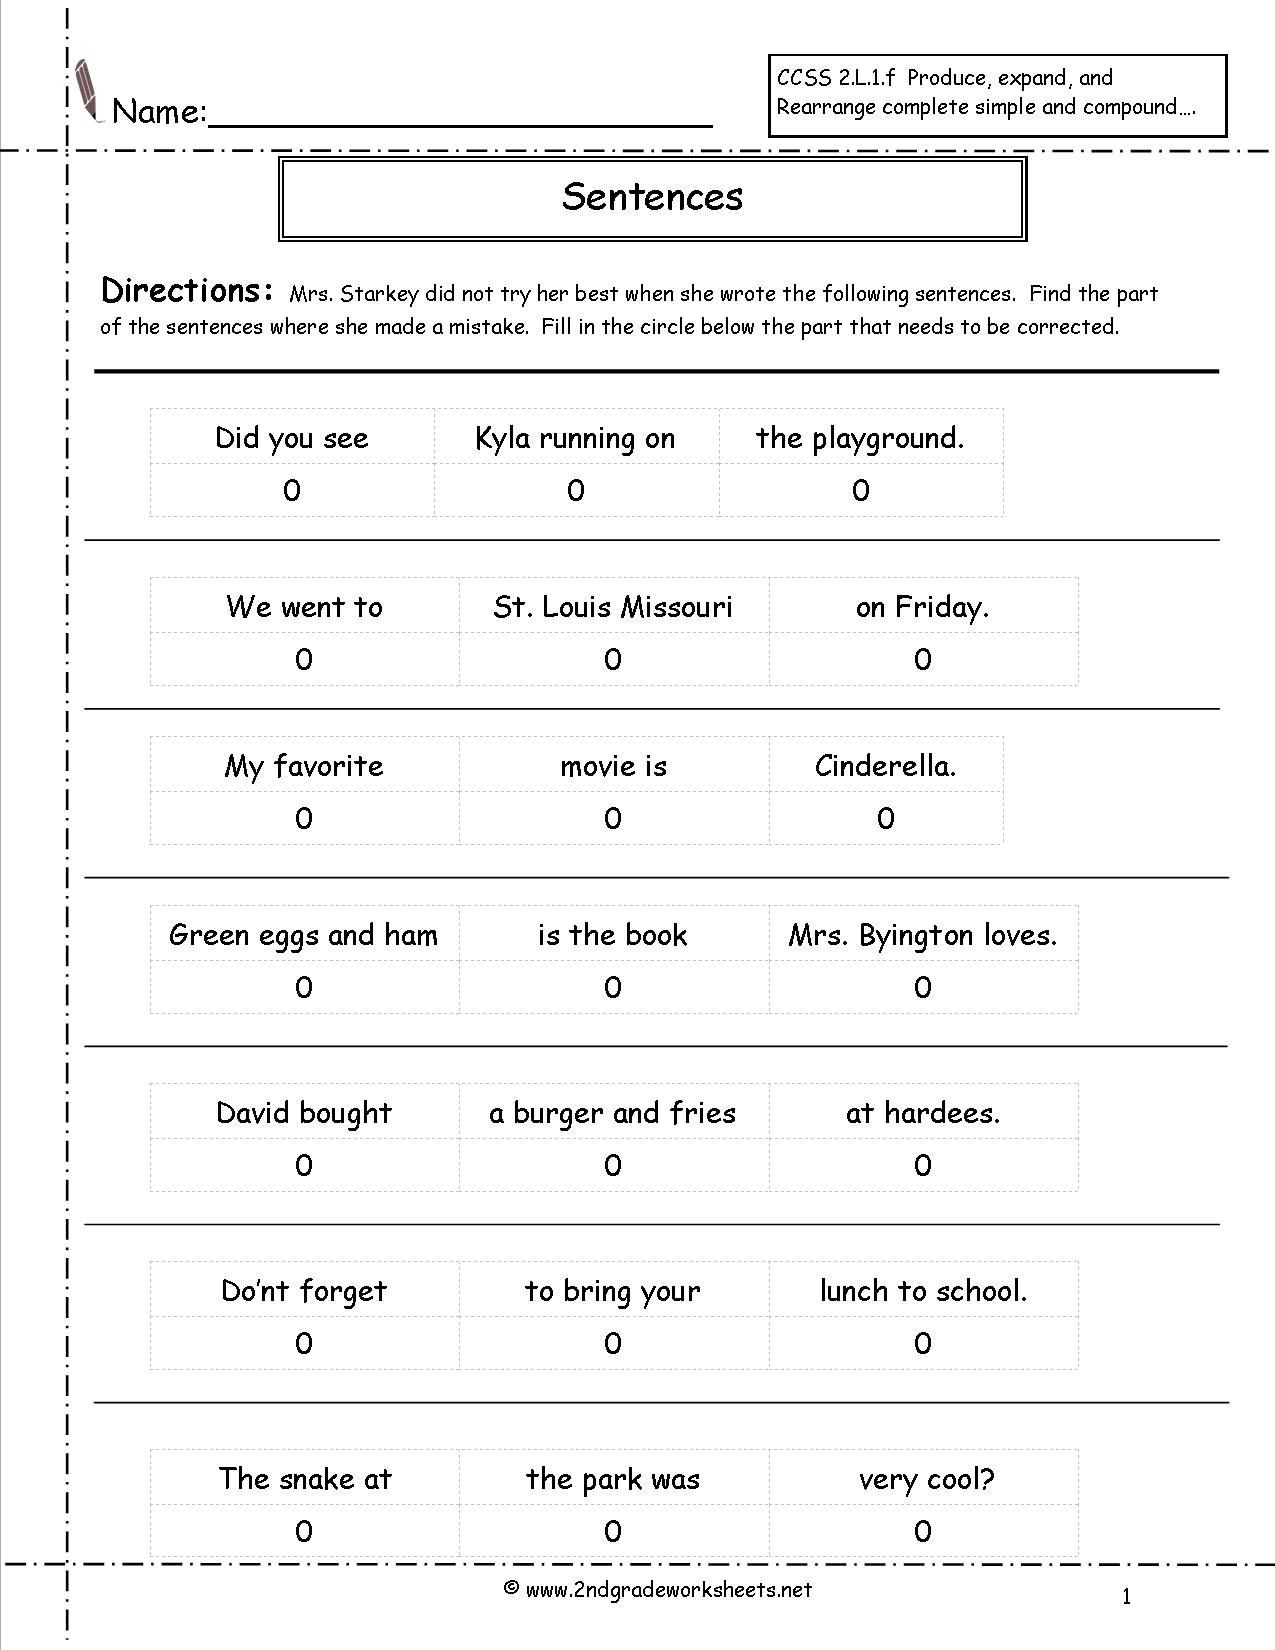 Topic Sentences Worksheets 3rd Grade Correct the Sentence Worksheet